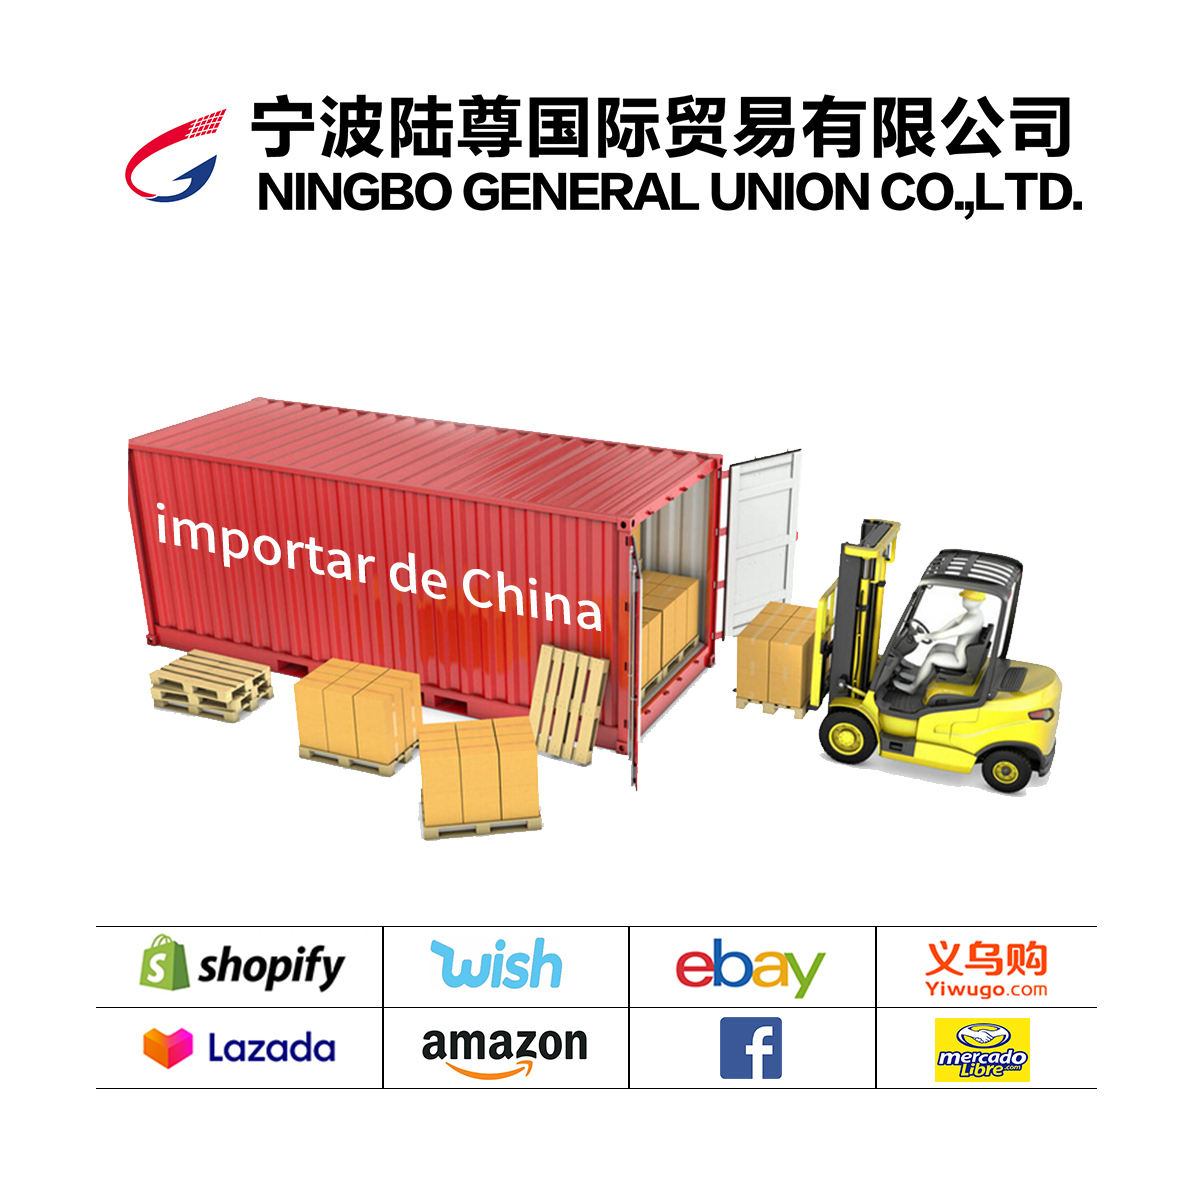 YiWu Sourcing China Buying Agent Agente Comercial China Trade Agent